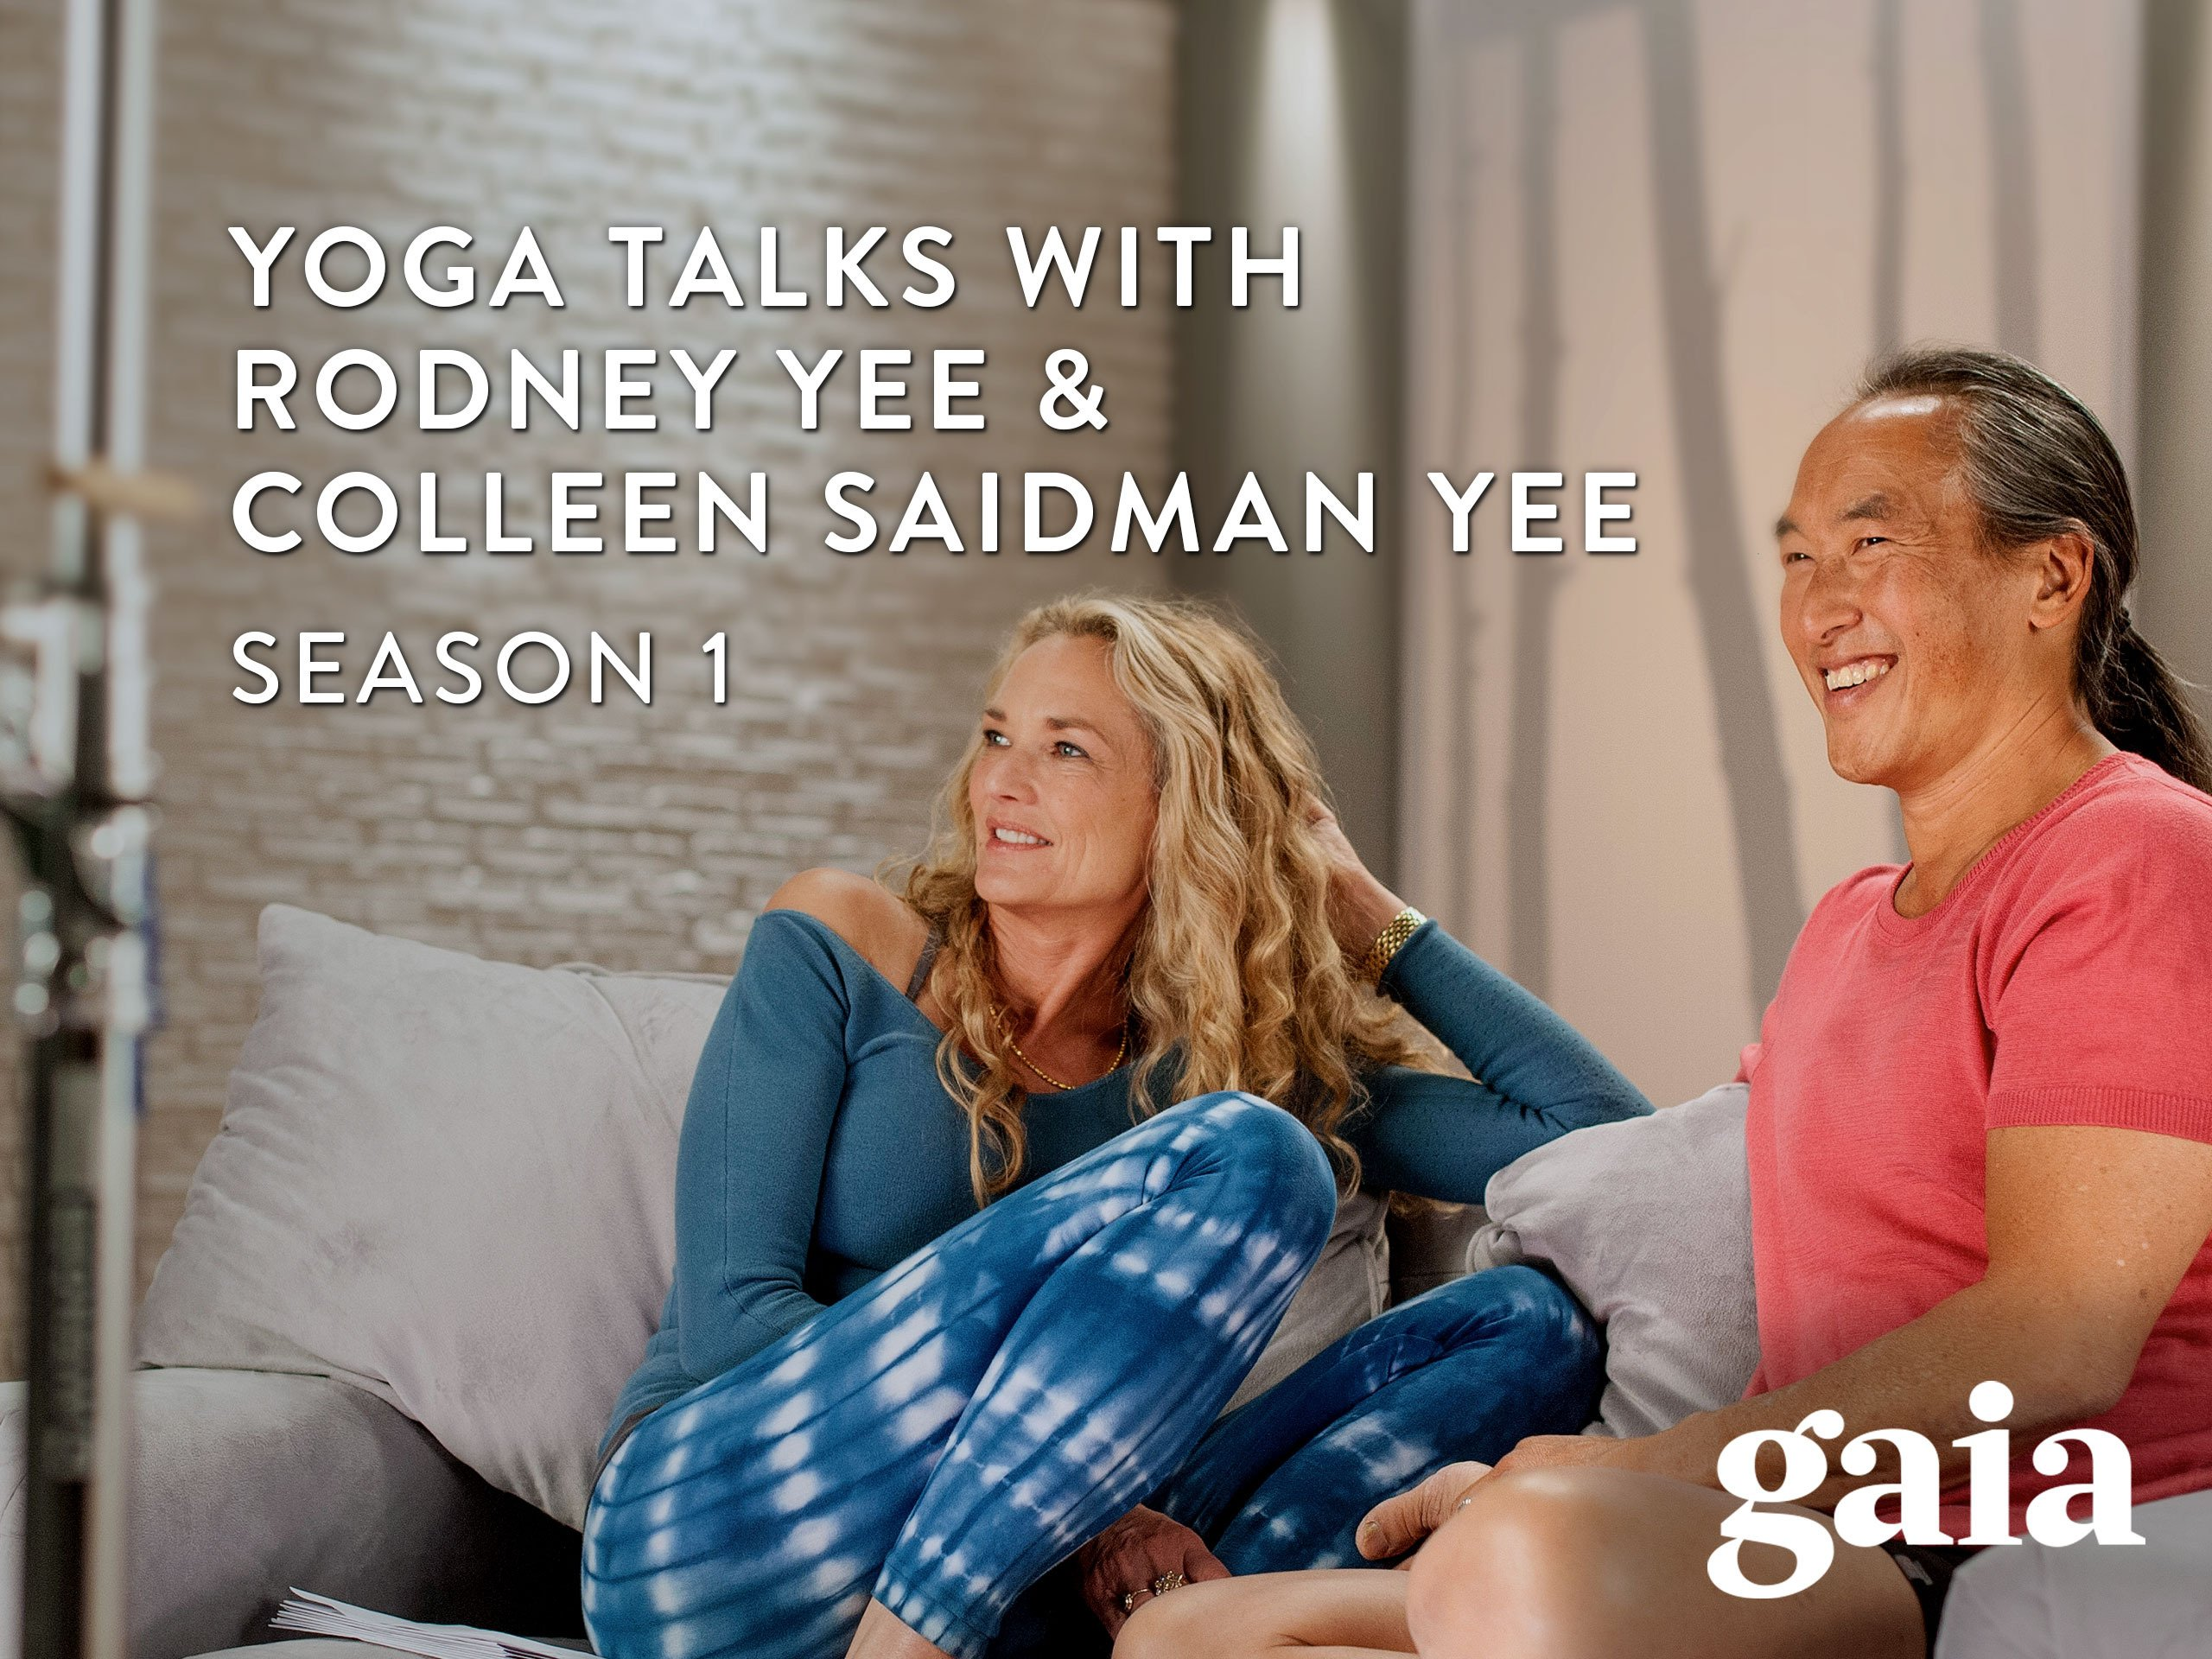 Amazon.com: Watch Yoga Talks with Rodney & Colleen - Season ...